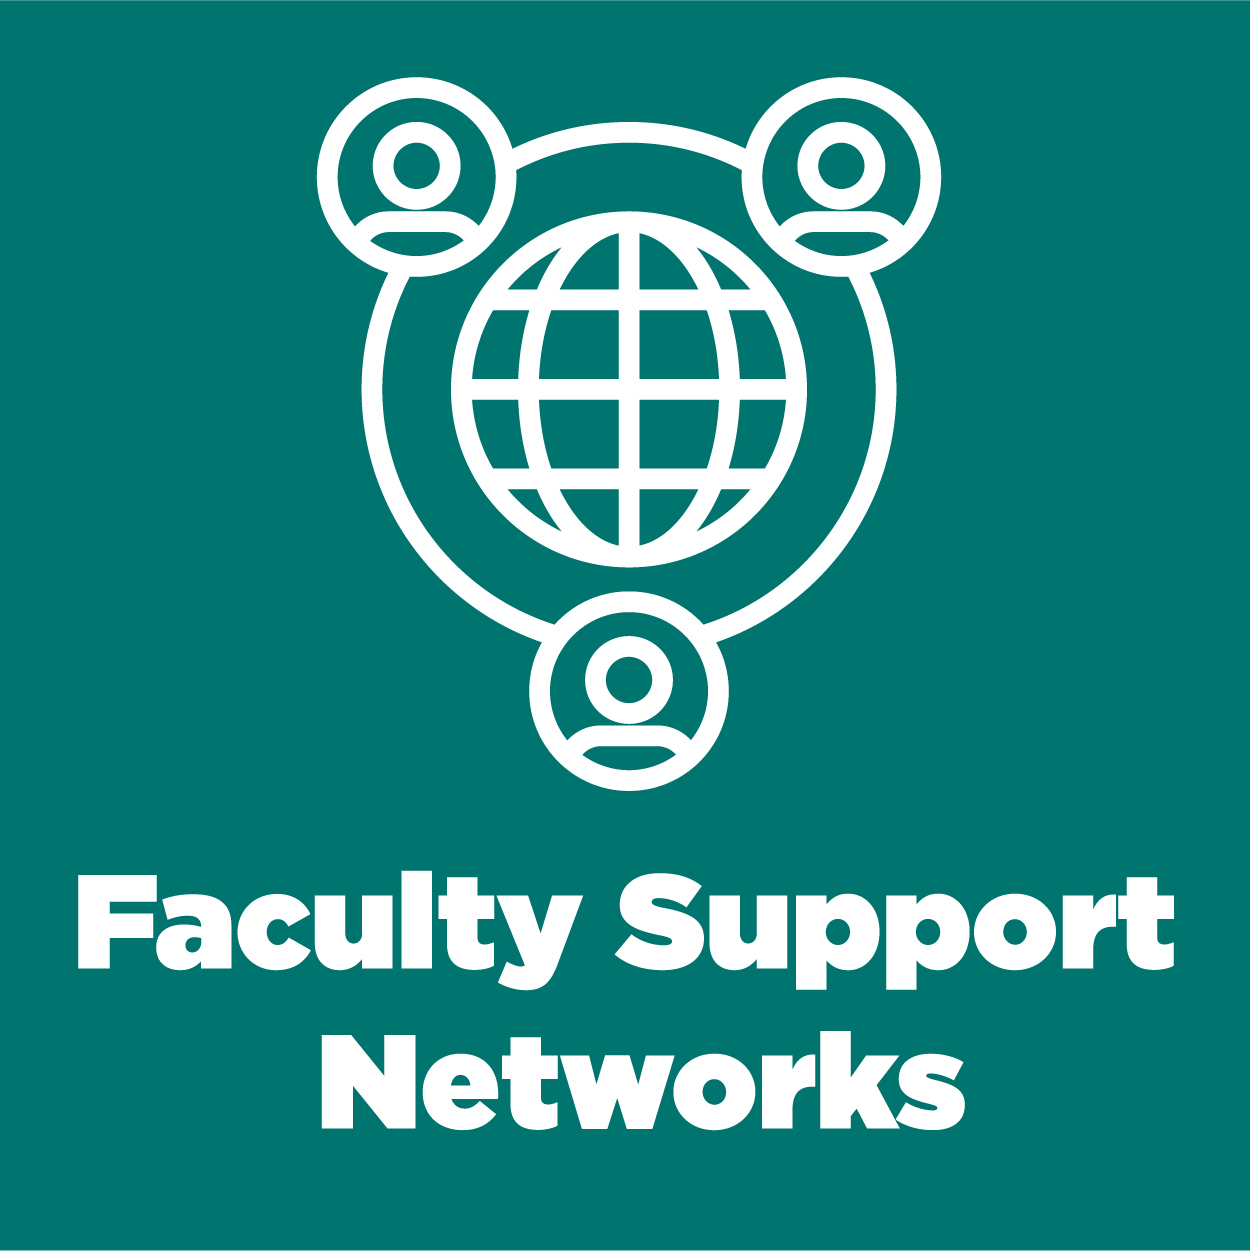 Faculty Support Networks